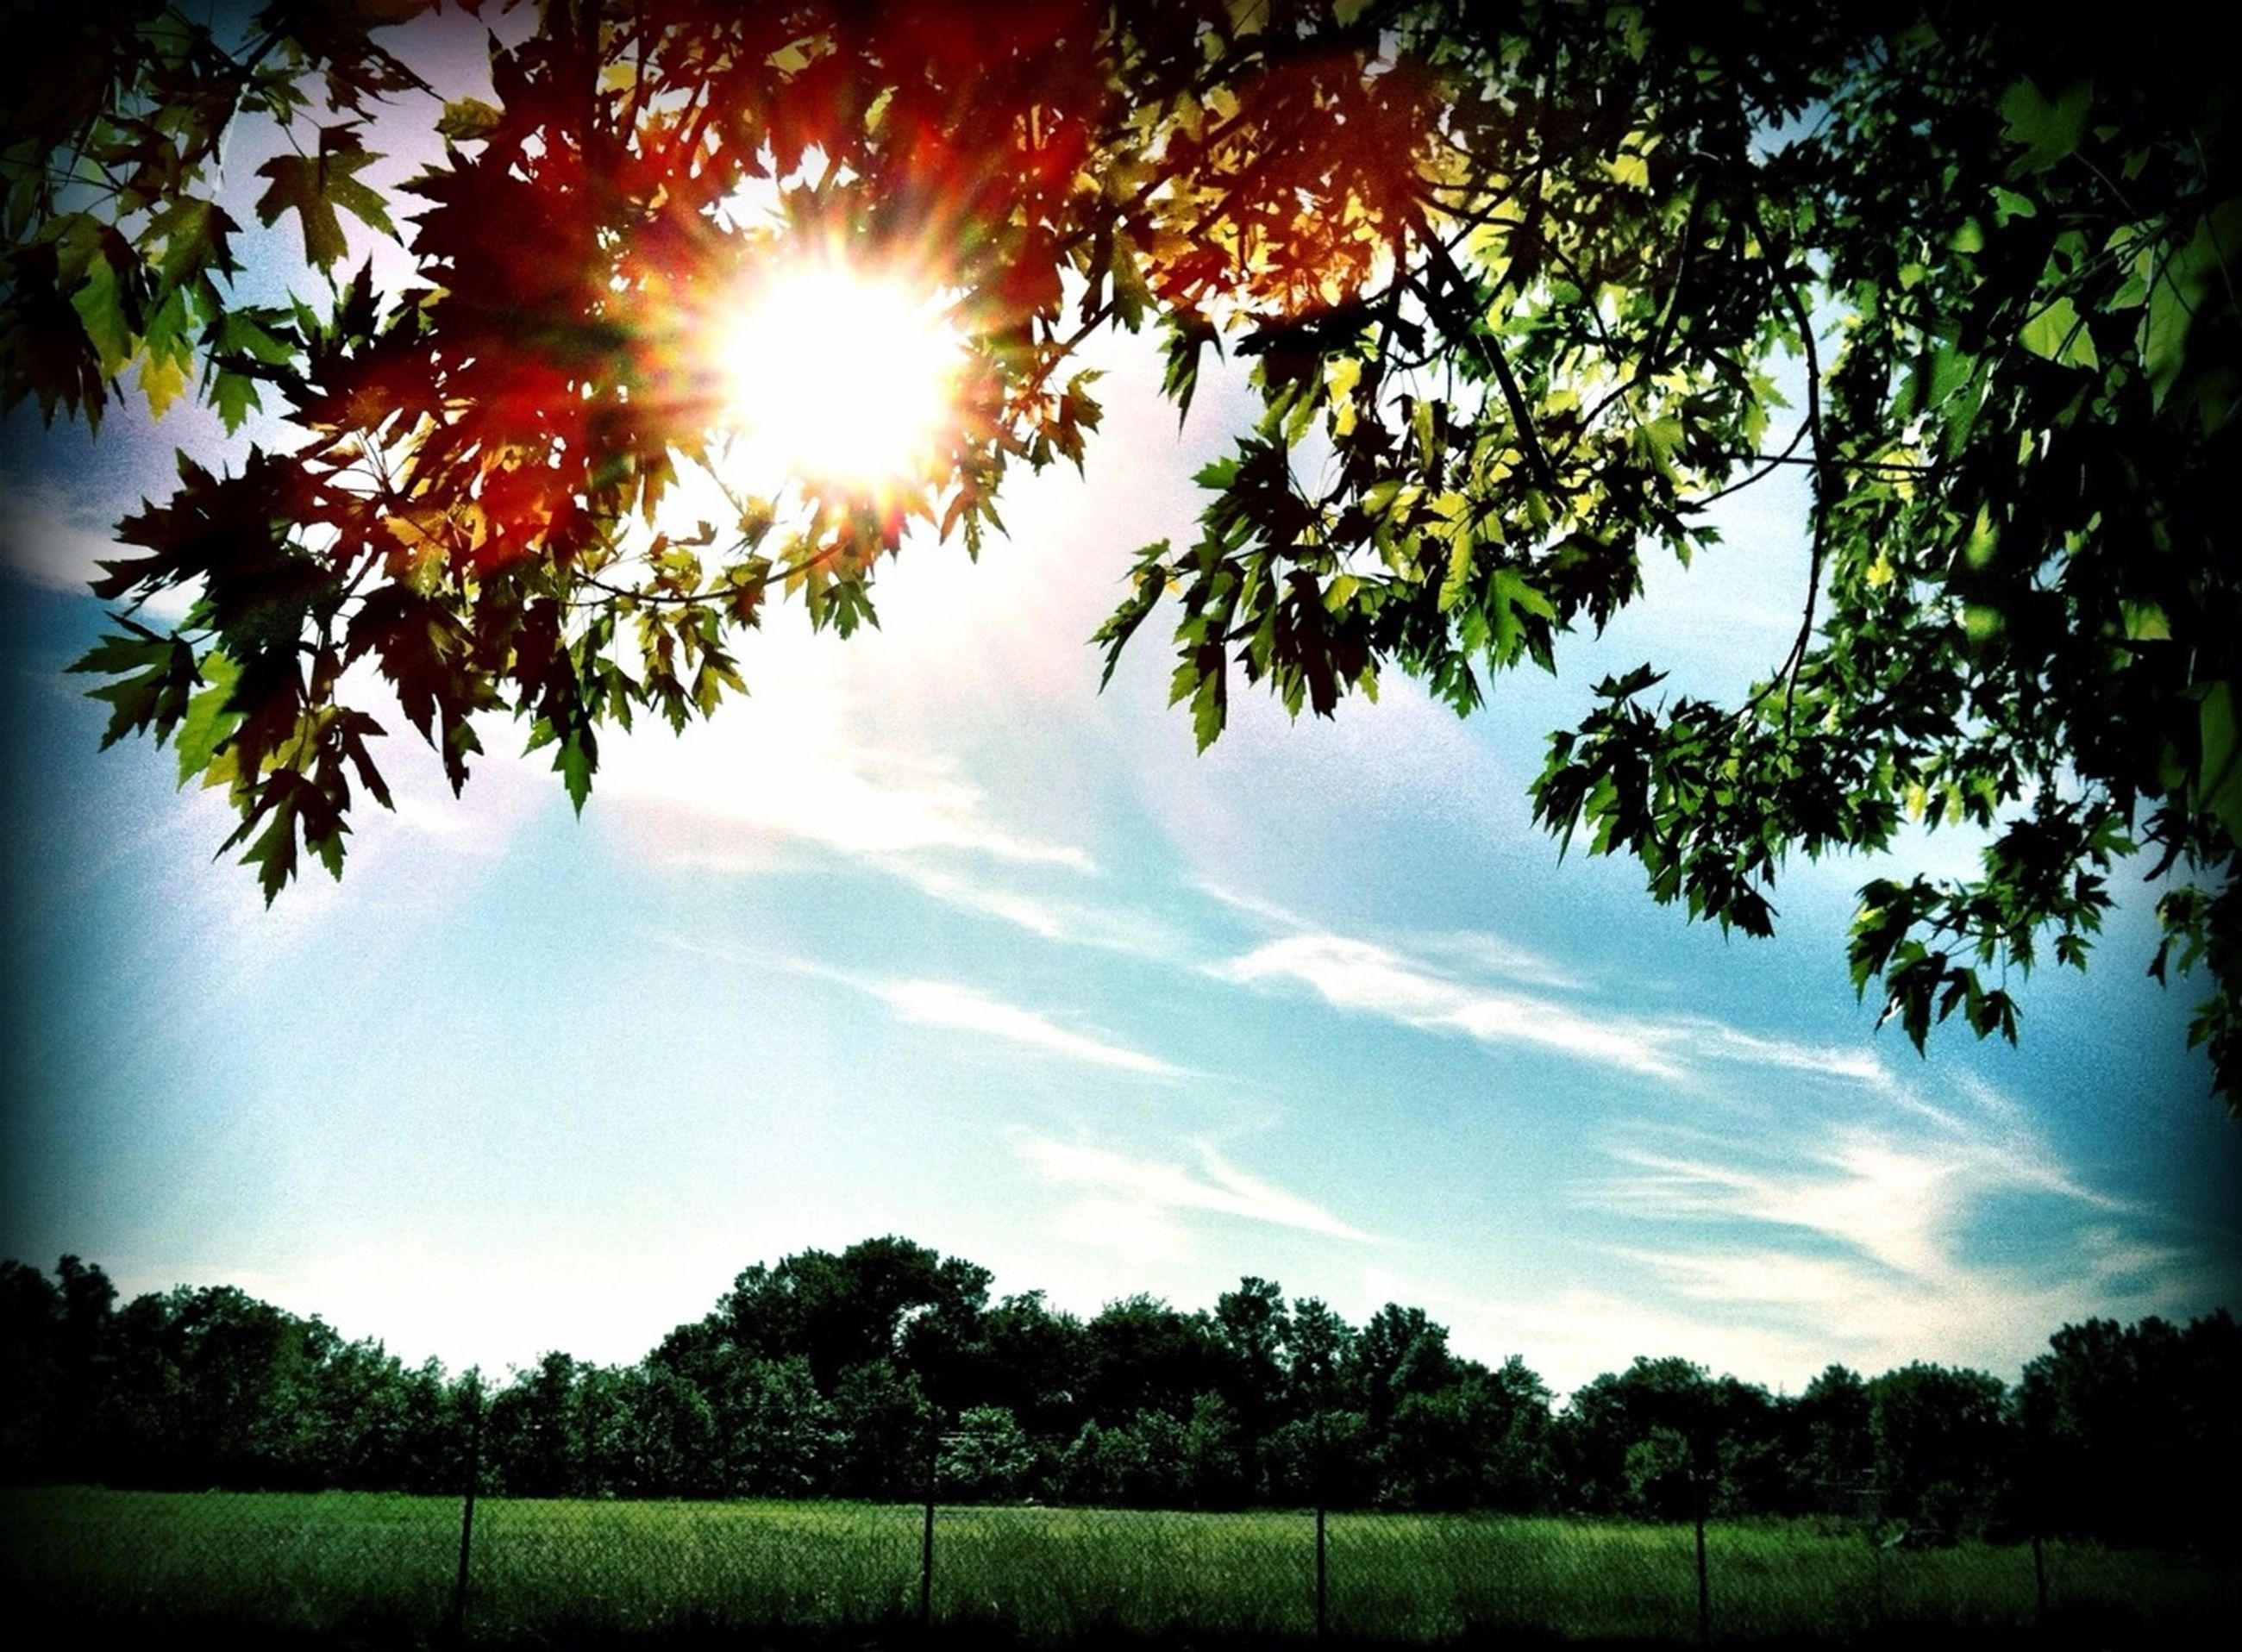 tree, sun, growth, tranquility, sunlight, beauty in nature, tranquil scene, sunbeam, nature, sky, green color, scenics, branch, lens flare, field, idyllic, landscape, sunny, cloud - sky, no people